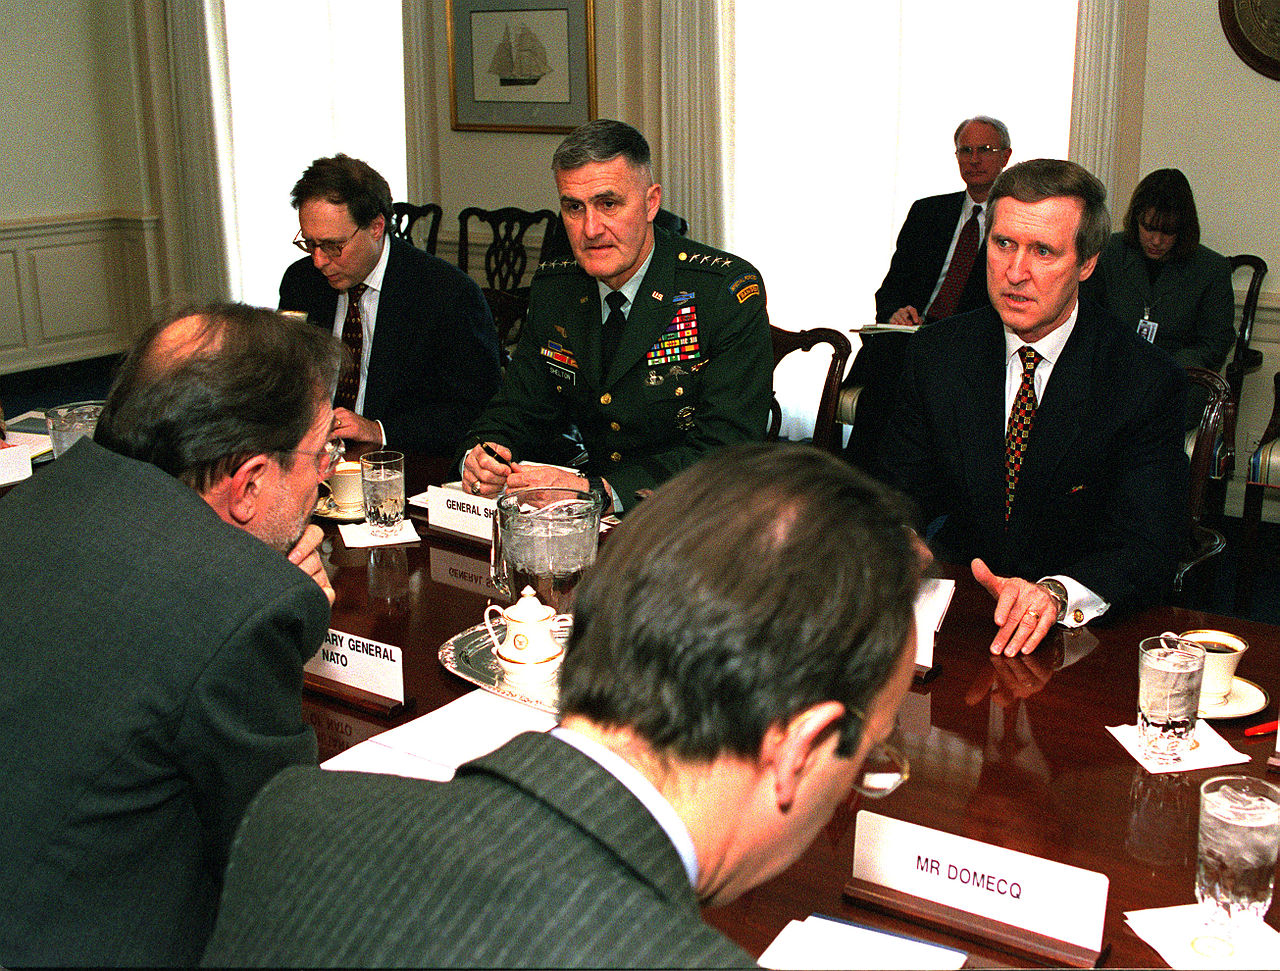 1280px-Pentagon_meeting_March_15_1999,_990315-D-9880W-016.jpg